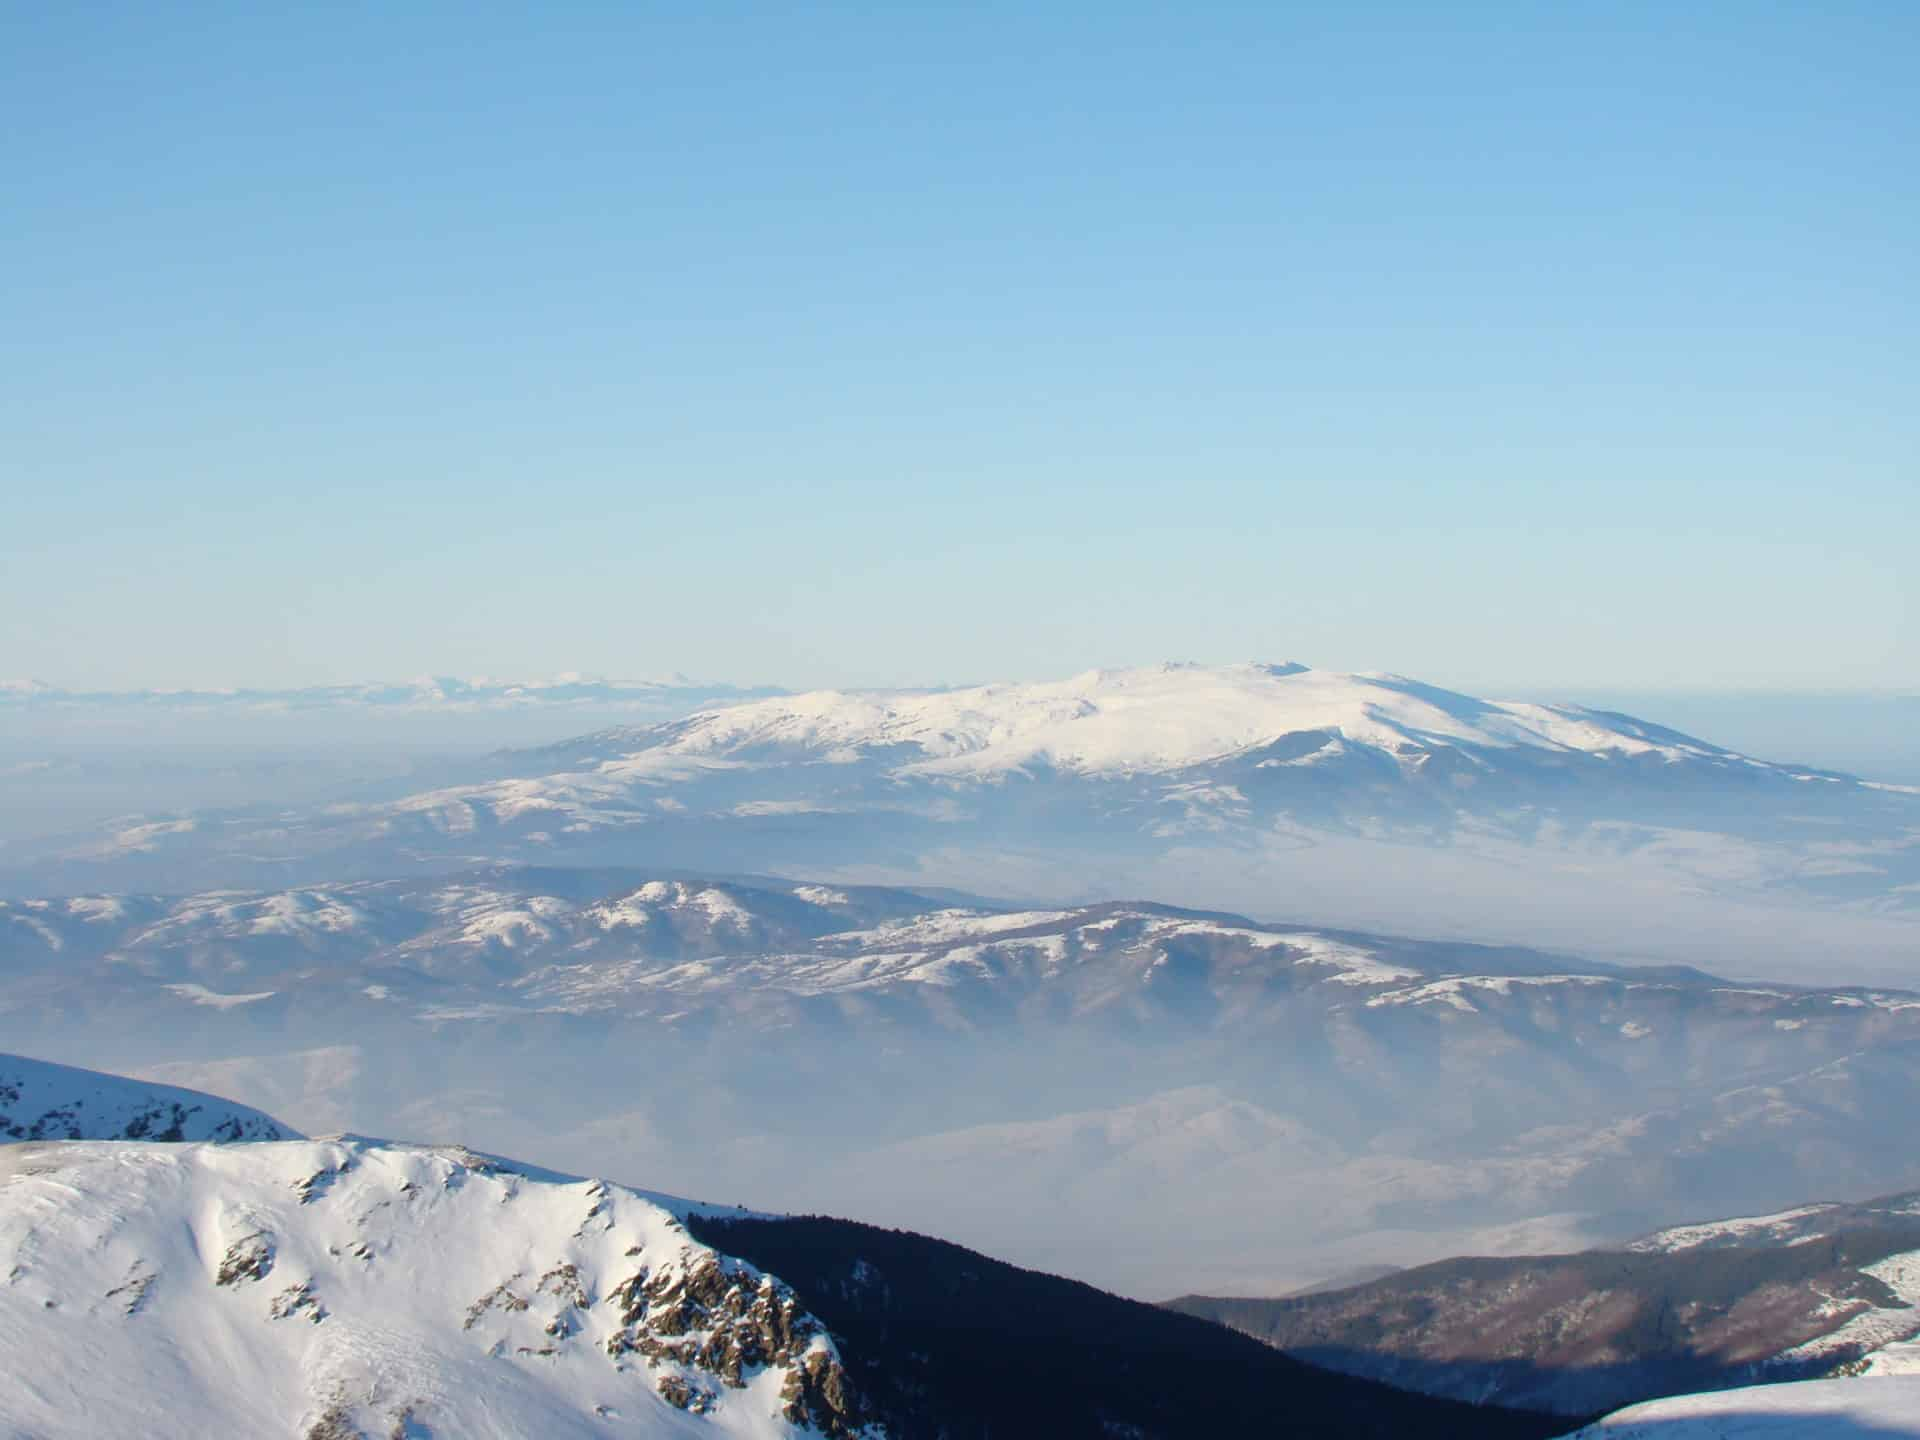 1-day snowshoeing to the top of Vitosha mountain. 1-day trip. UIMLA leader